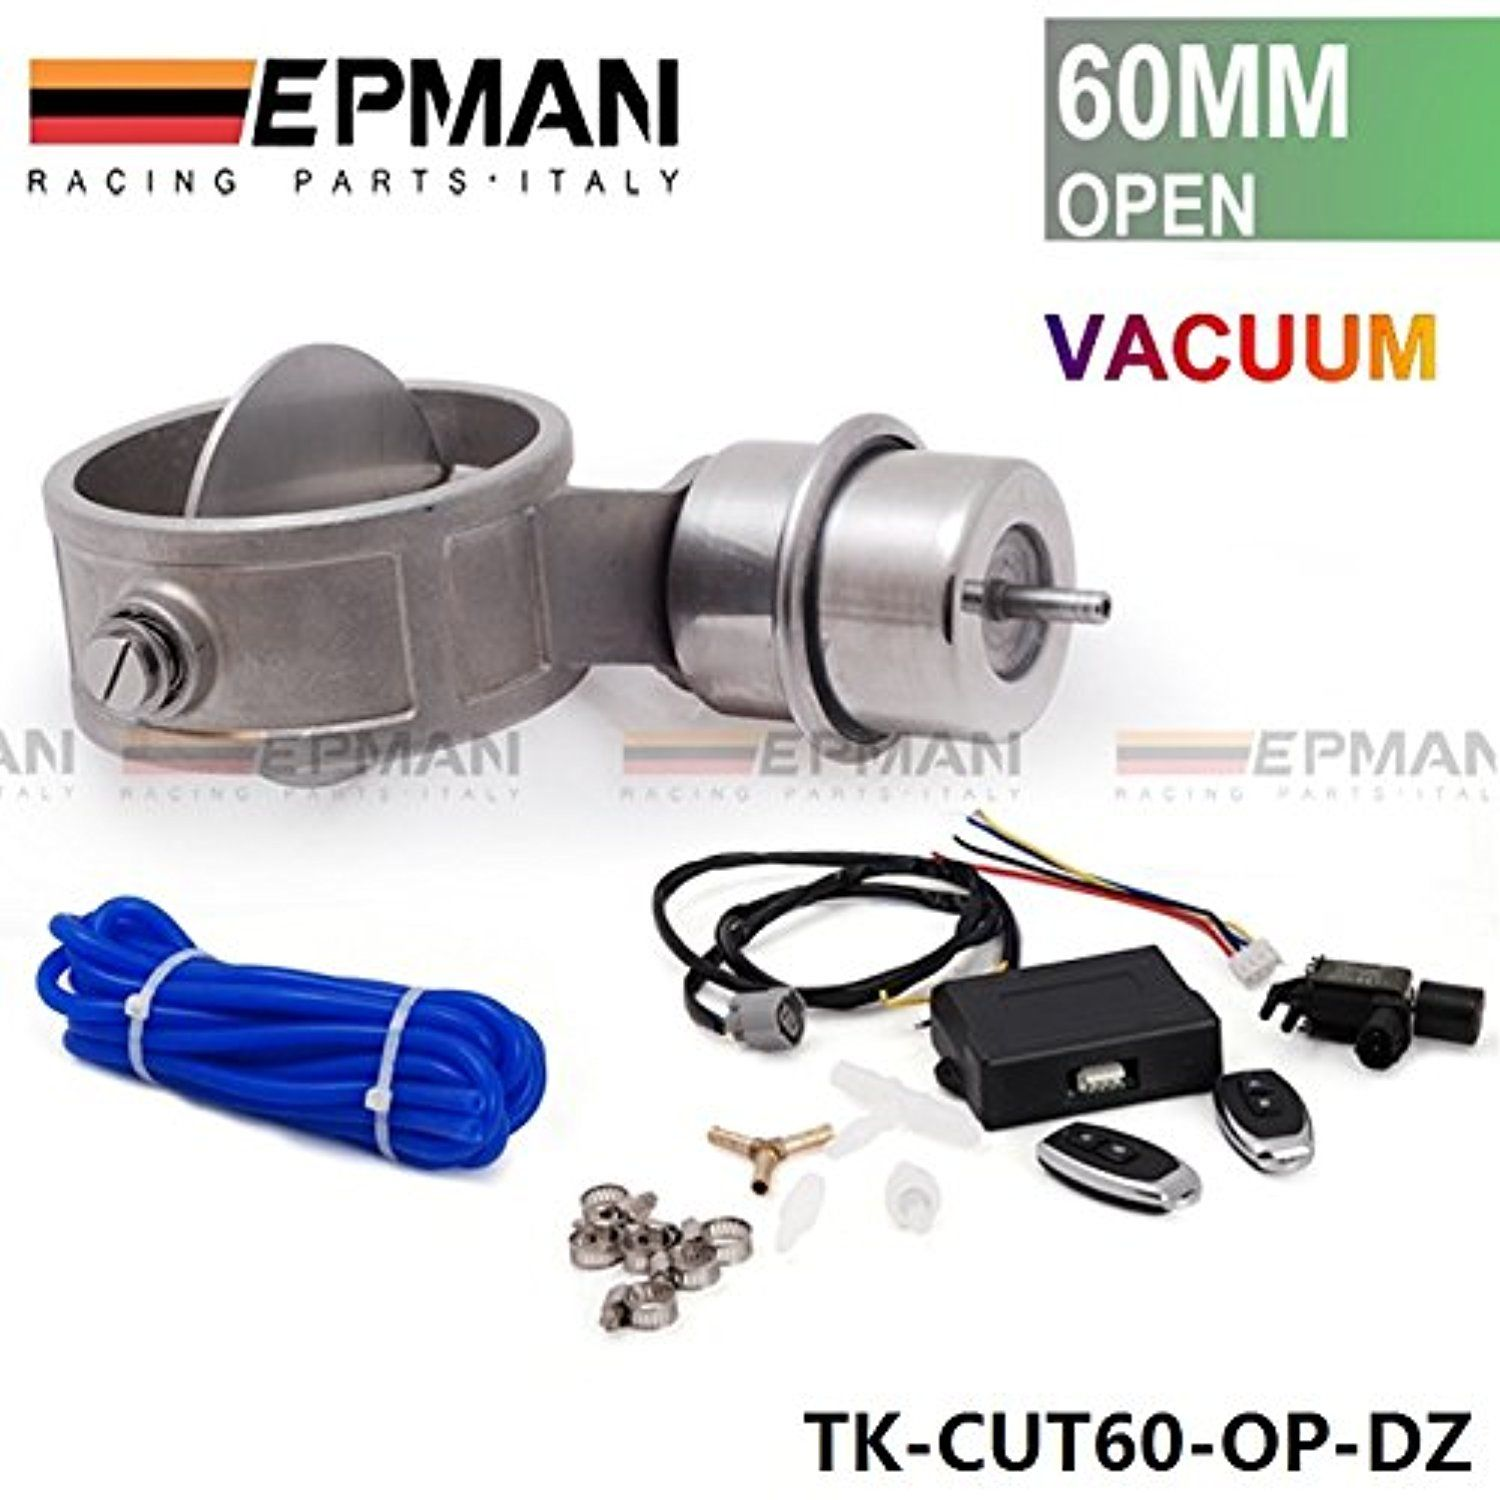 Exhaust control valve set cutout 2 3 60mm pipe open with boost actuator with wireless remote controller set tk cut60 op boost bz awesome product